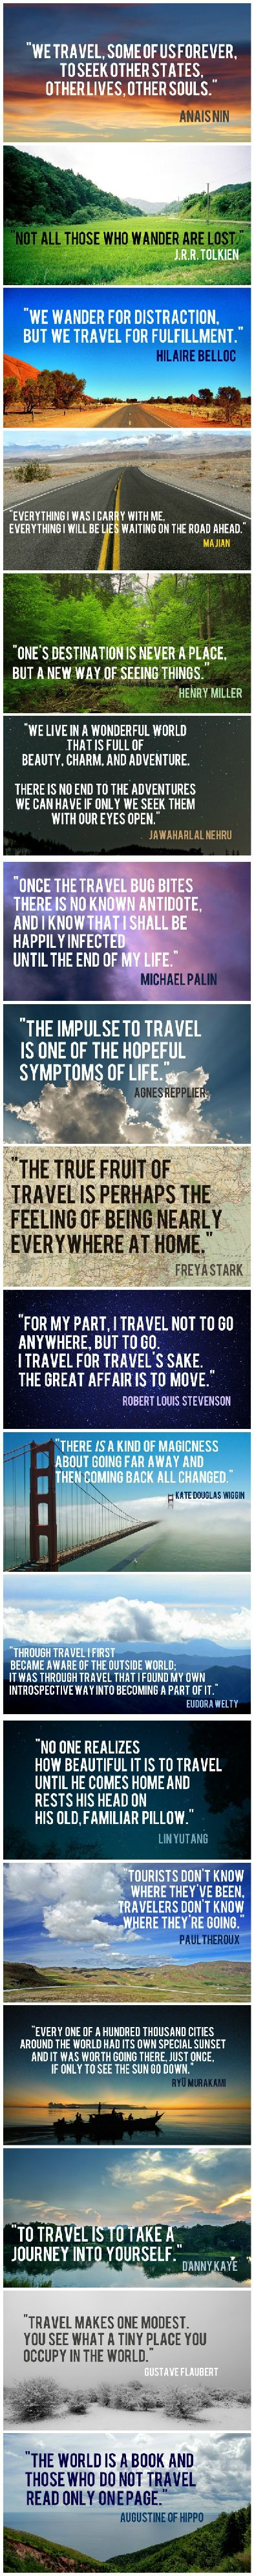 18 Travel Quotes to Feed Your Sense of Wanderlust | Whether you're an avid traveler who's never without a suitcase, or a homebody searching for a momentary escape from your daily routine, these quotes will speak to your sense of wanderlust.  #wanderlust